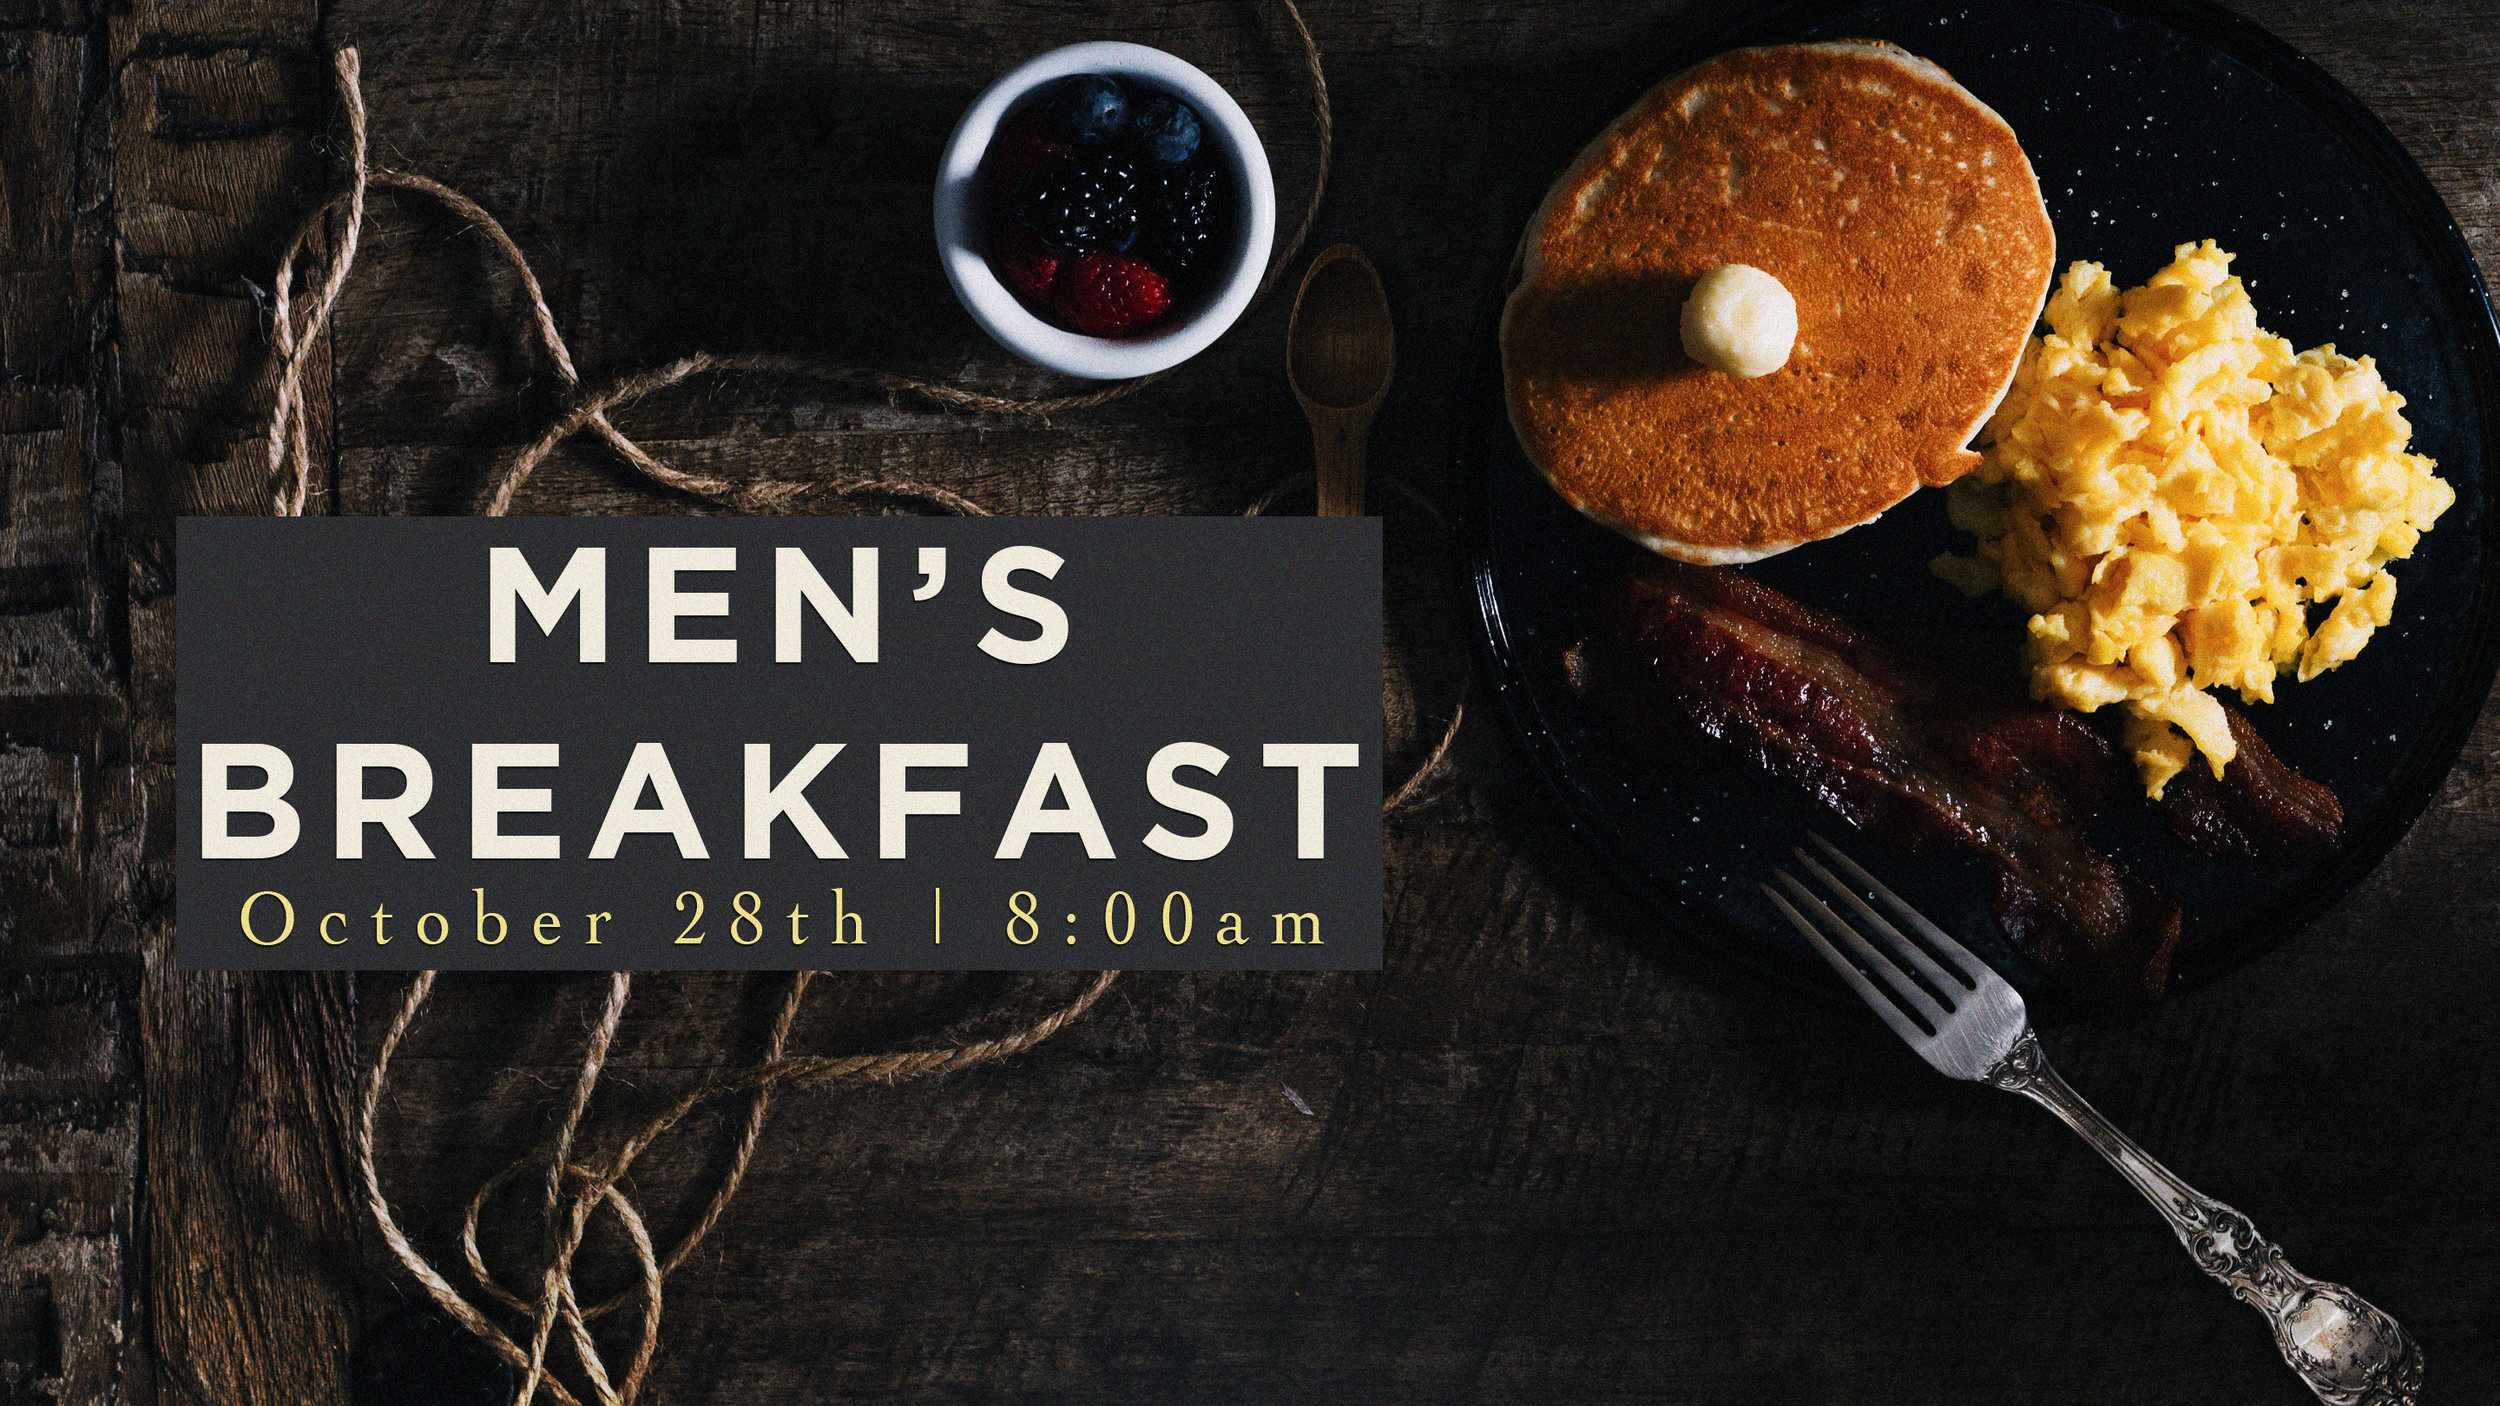 Freedom Men, we're having our next men's breakfast Saturday, October 28th in the Coffee Shop. We'll eat some great food, have an awesome time of fellowship and hear a challenging word. We look forward to seeing you there!